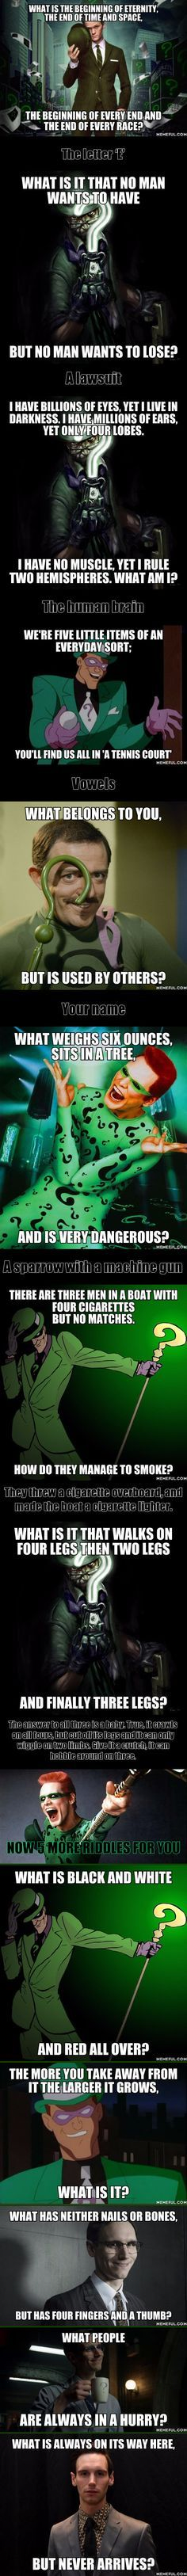 13 riddles from the Riddler, can you solve them?